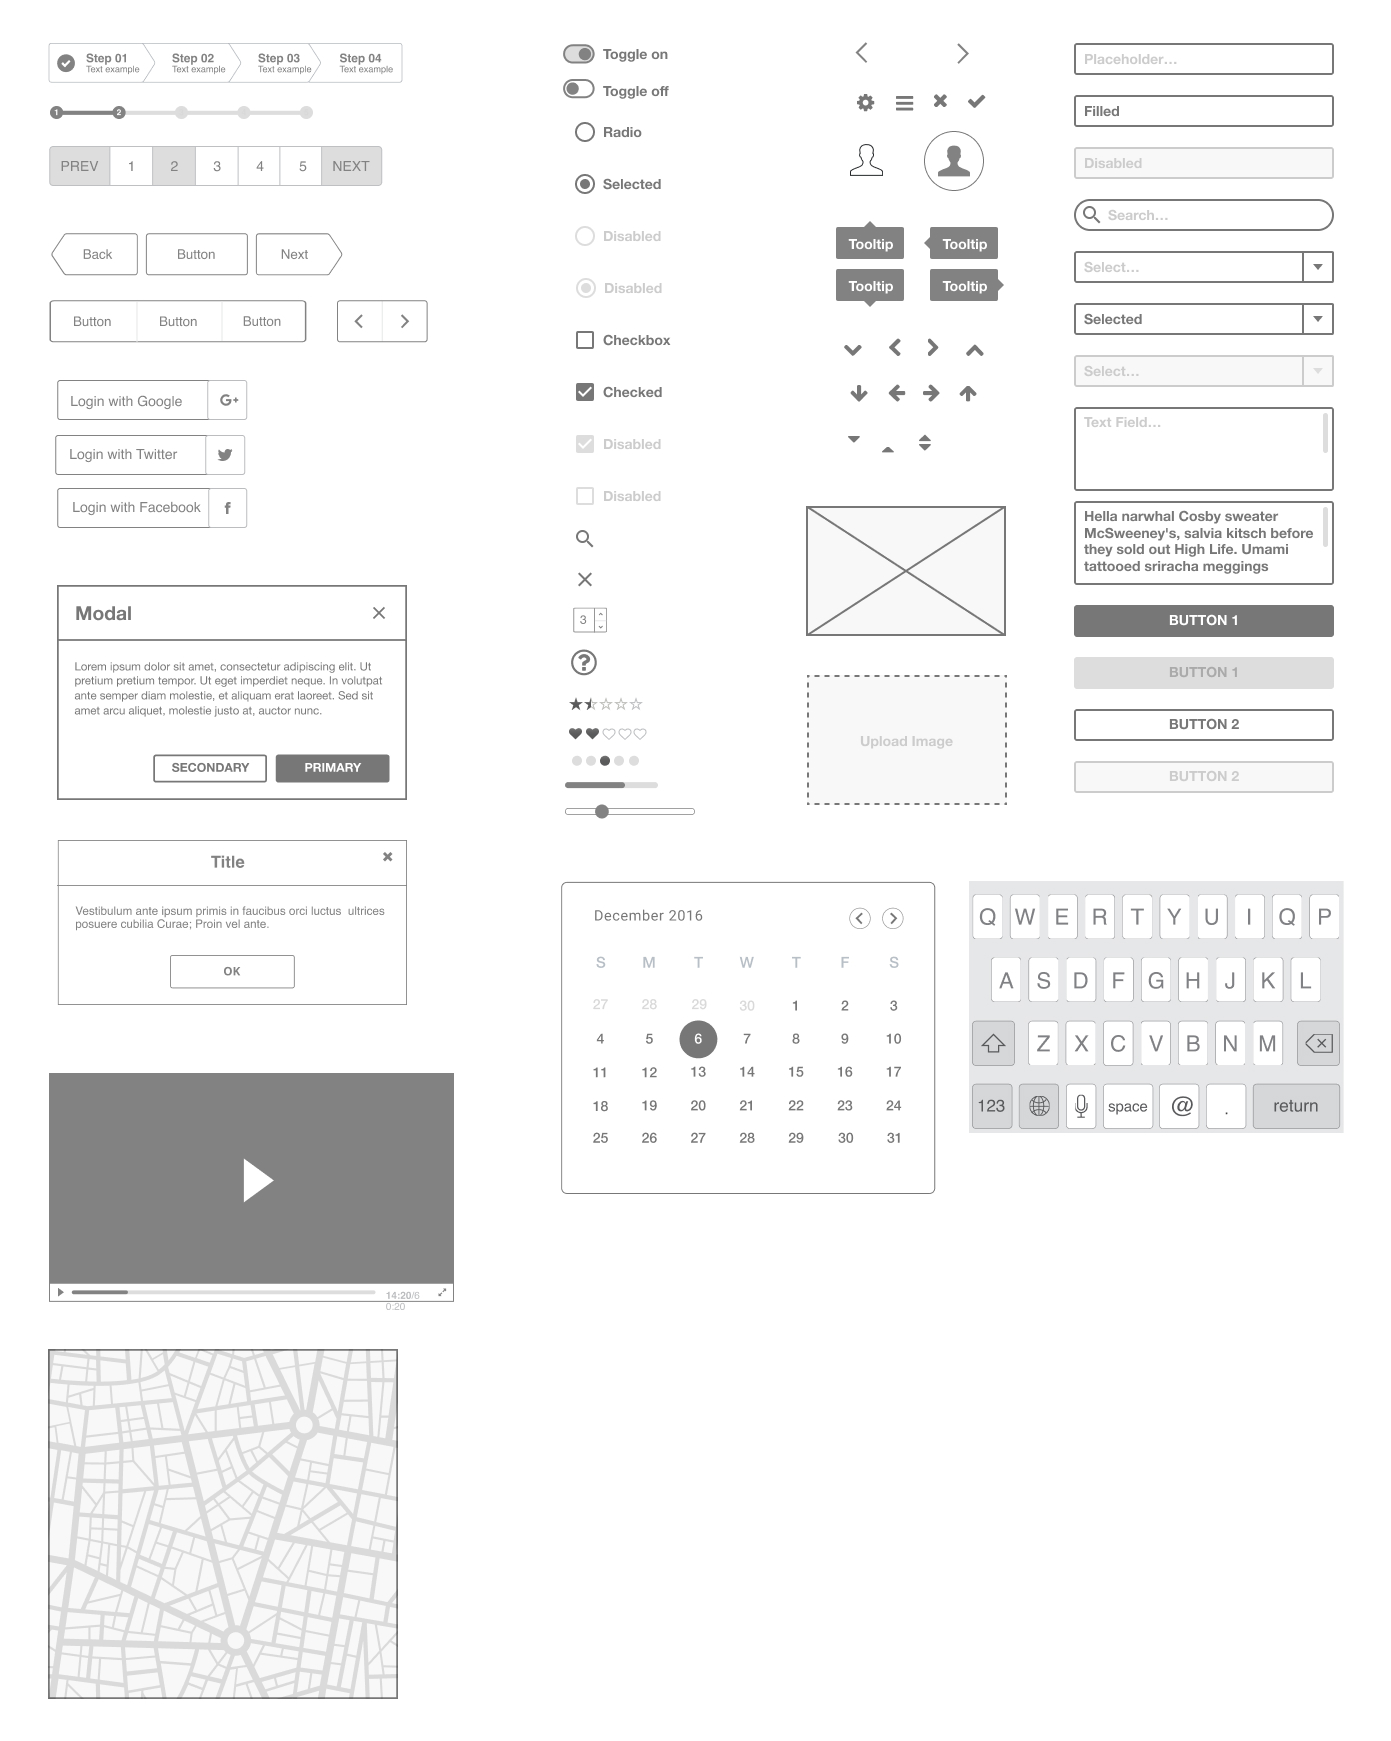 Ironhack Free Wireframe UI Kit for Figma - Use this wireframe kit to make your first steps as a UX/UI Designer using Figma. This kit contains useful bits and pieces, UI elements, and Interface components to rapidly build your designs, convey your ideas or test.